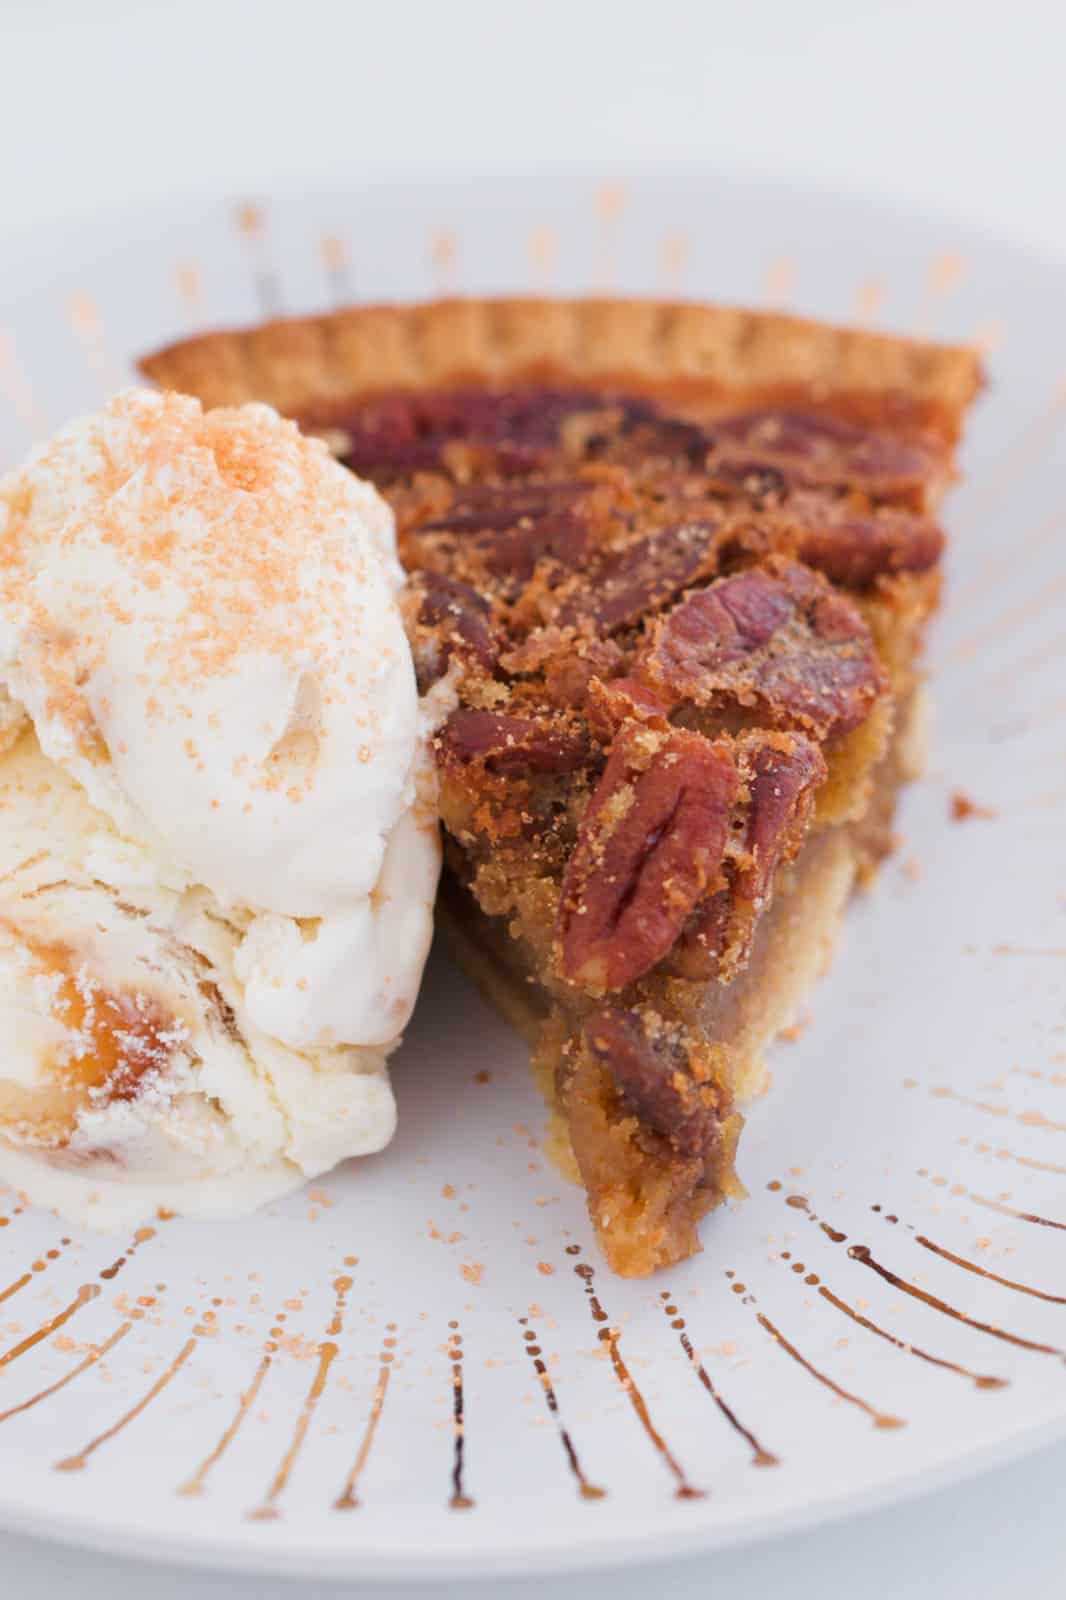 A slice of pecan pie with a scoop of vanilla ice-cream on a white and gold plate.